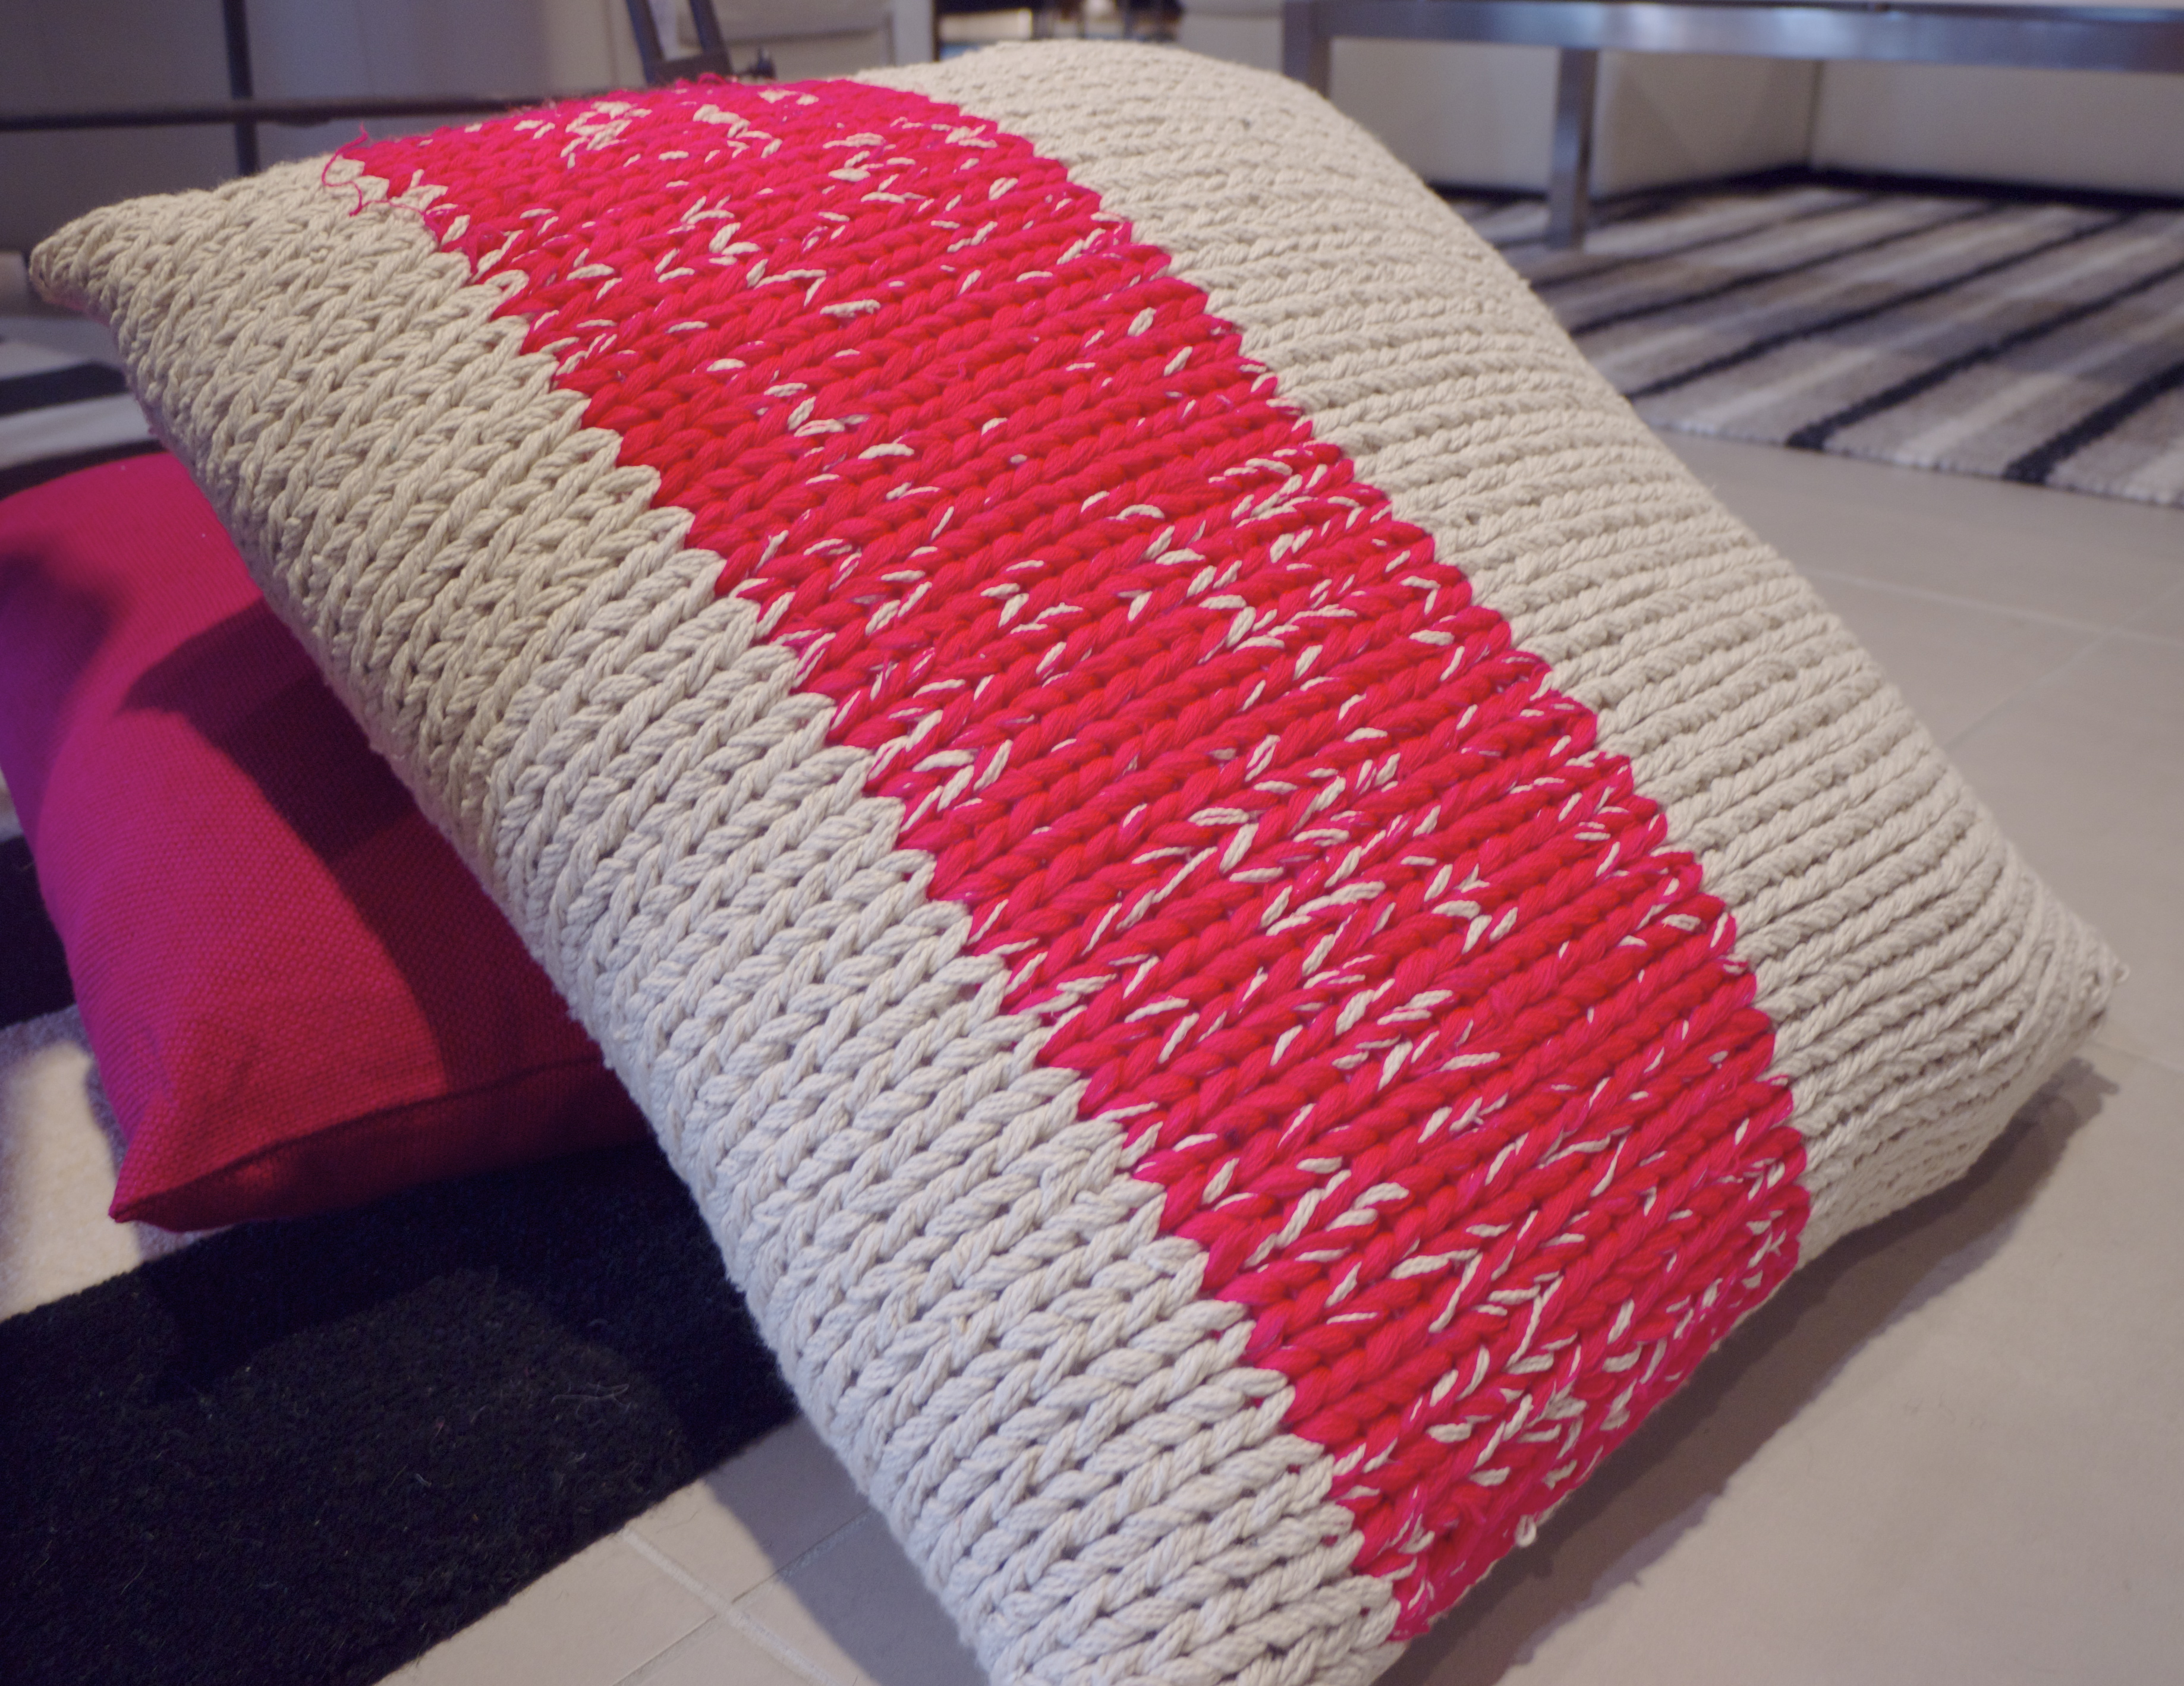 Neon Decor - Cable Knit Cushion from Freedom